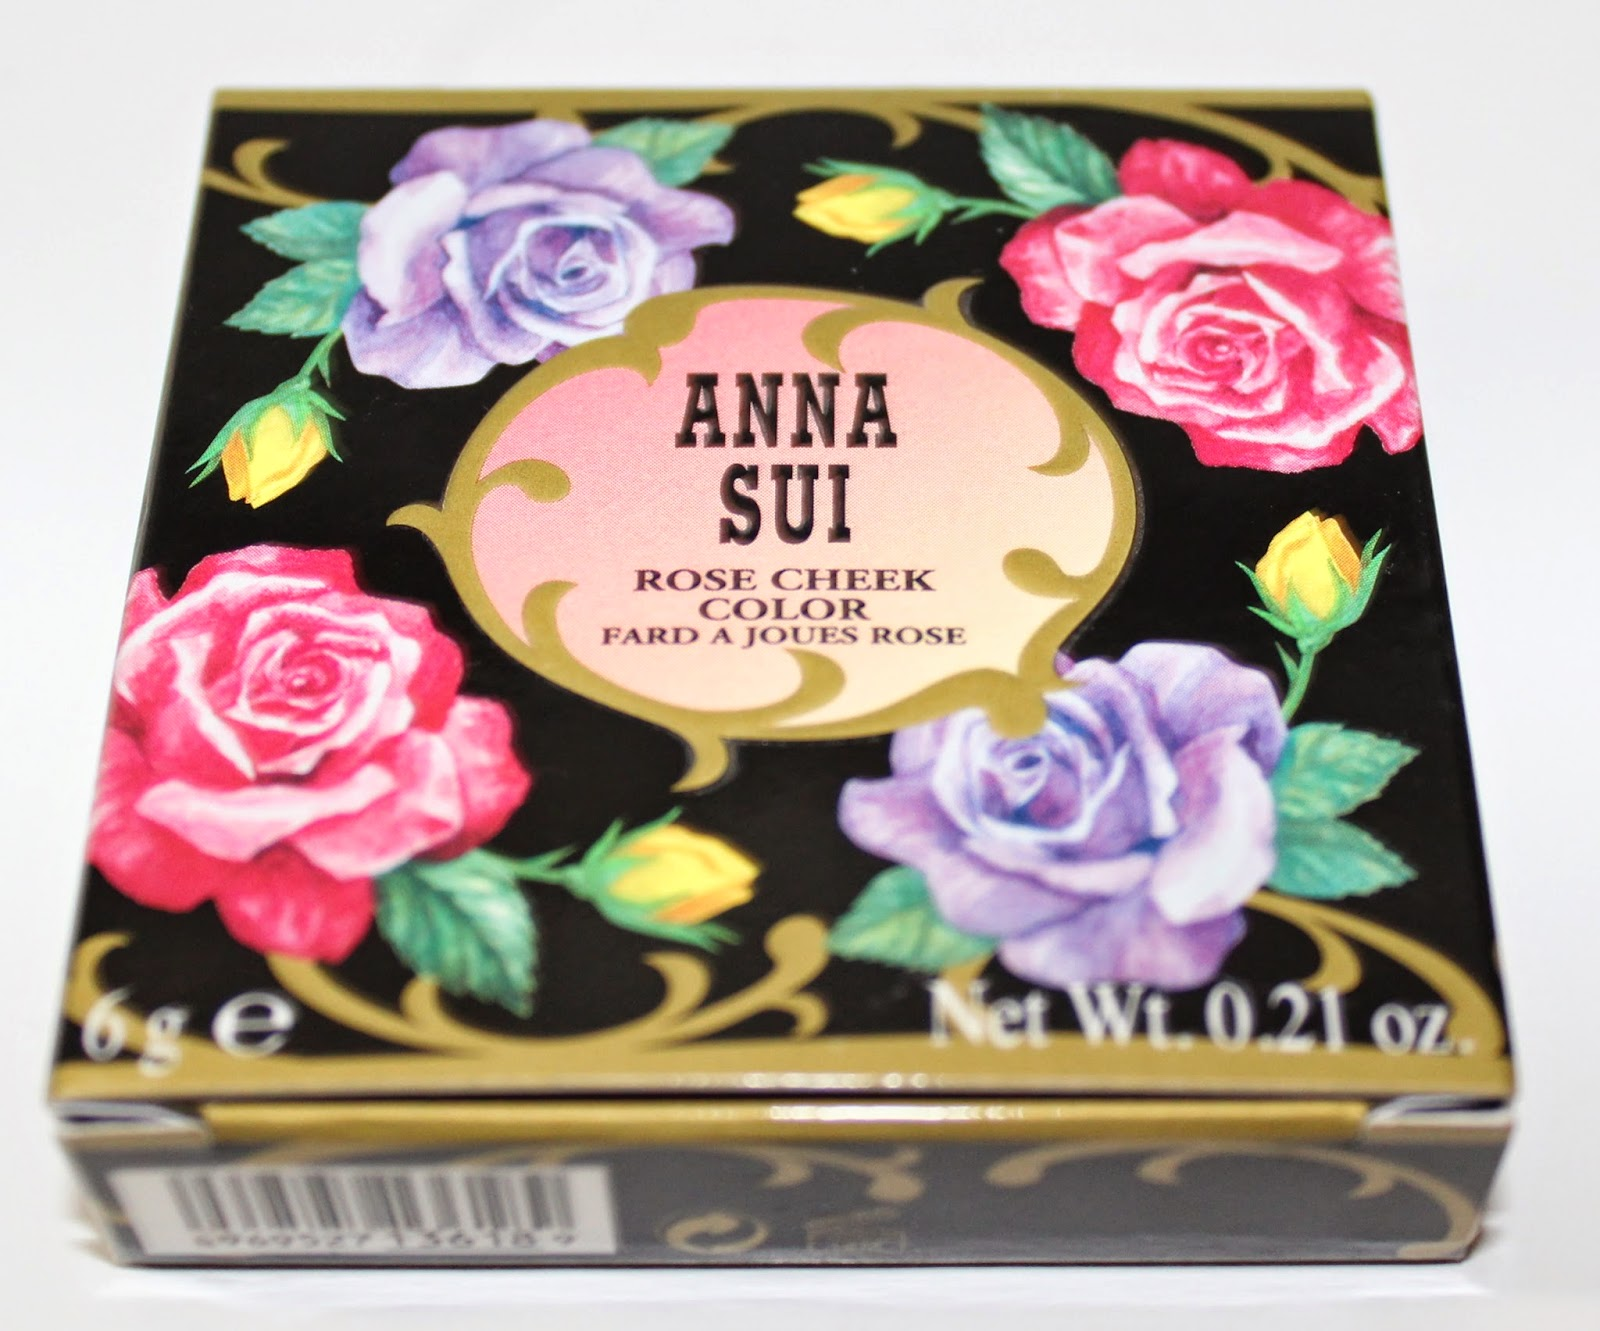 Anna Sui Rose Cheek Color in Mystic Rose Box